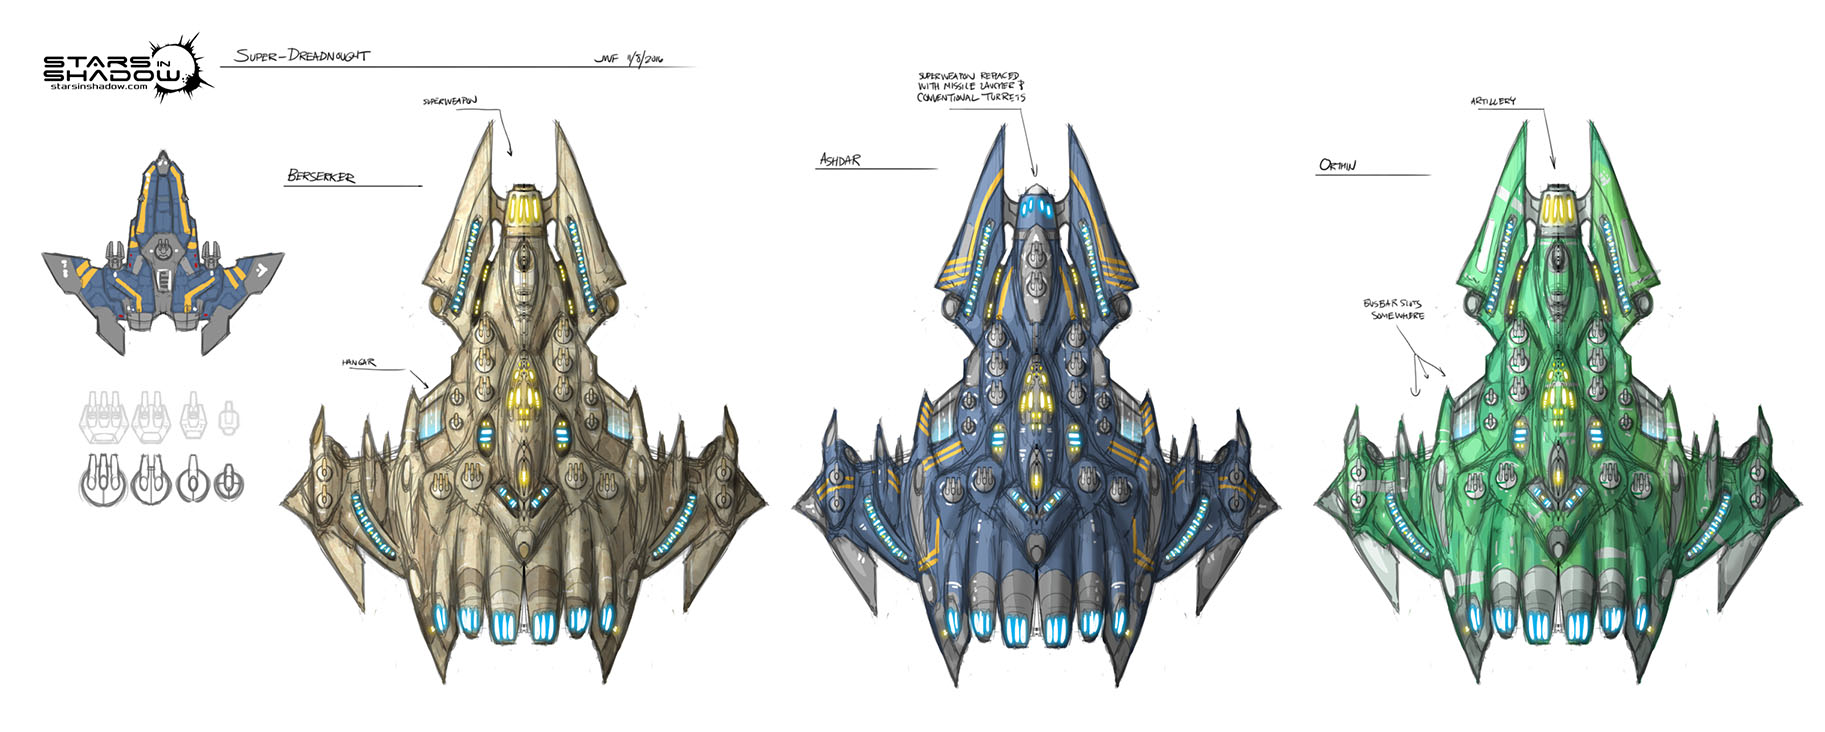 Stars in Shadow: Super Dreadnought Thumbnails by AriochIV